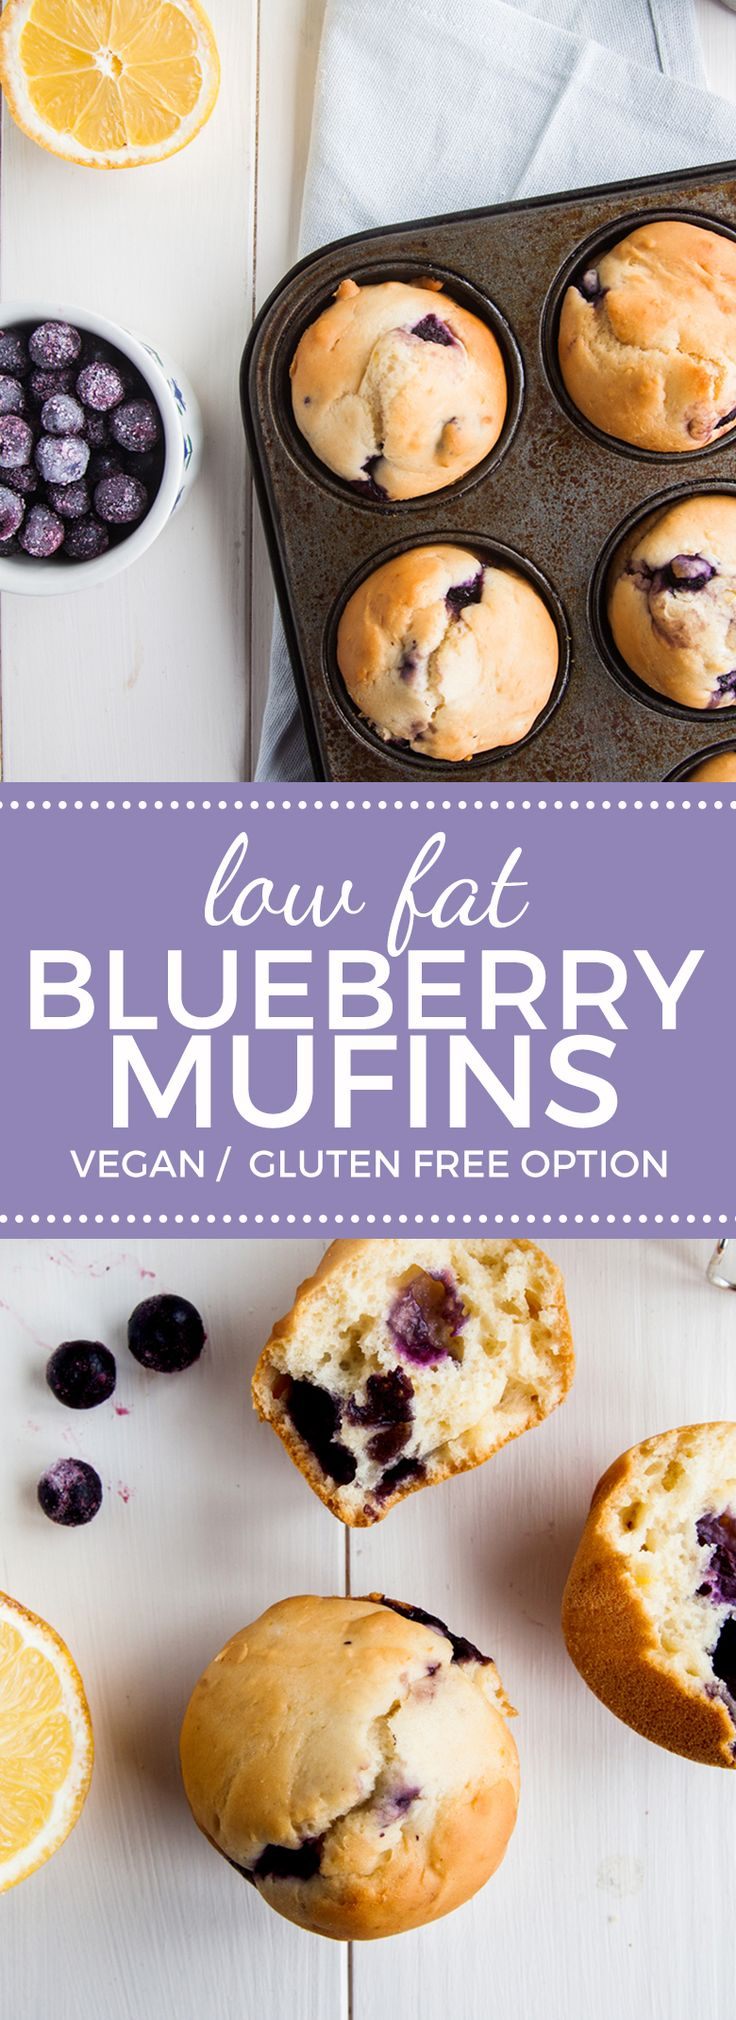 Low-Fat-Lemon-Bluberry-Muffins-(Vegan + GF Option)